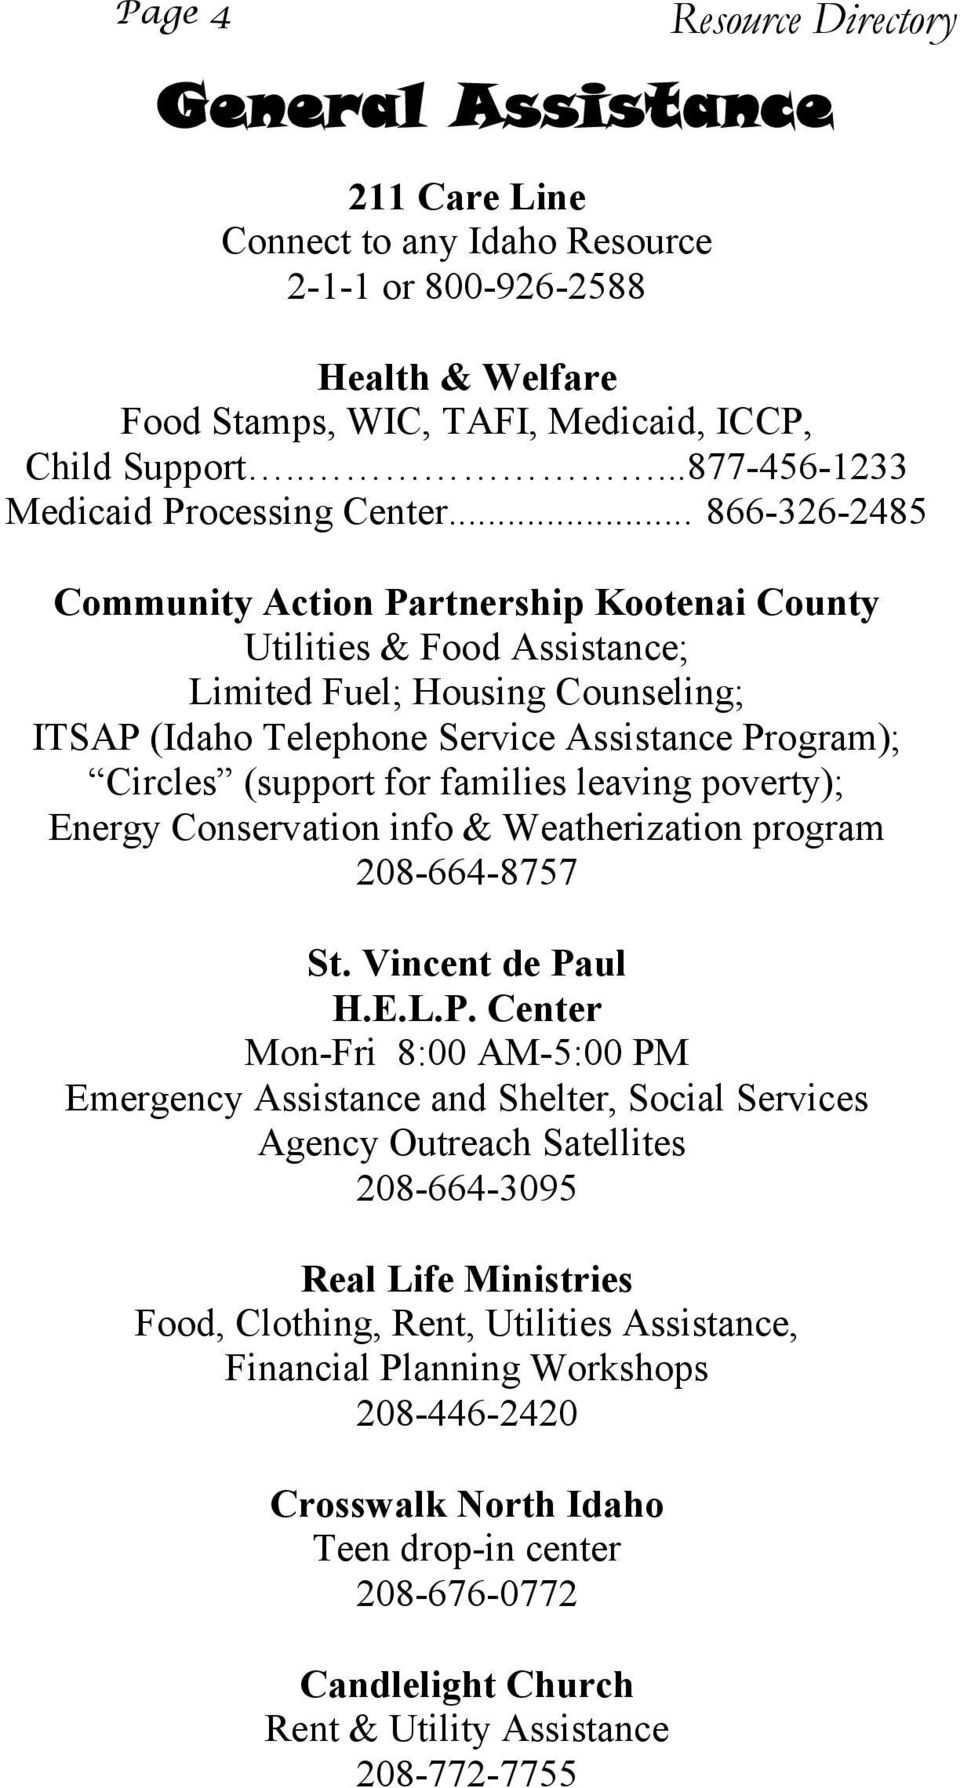 .. 866-326-2485 Community Action Partnership Kootenai County Utilities & Food Assistance; Limited Fuel; Housing Counseling; ITSAP (Idaho Telephone Service Assistance Program); Circles (support for